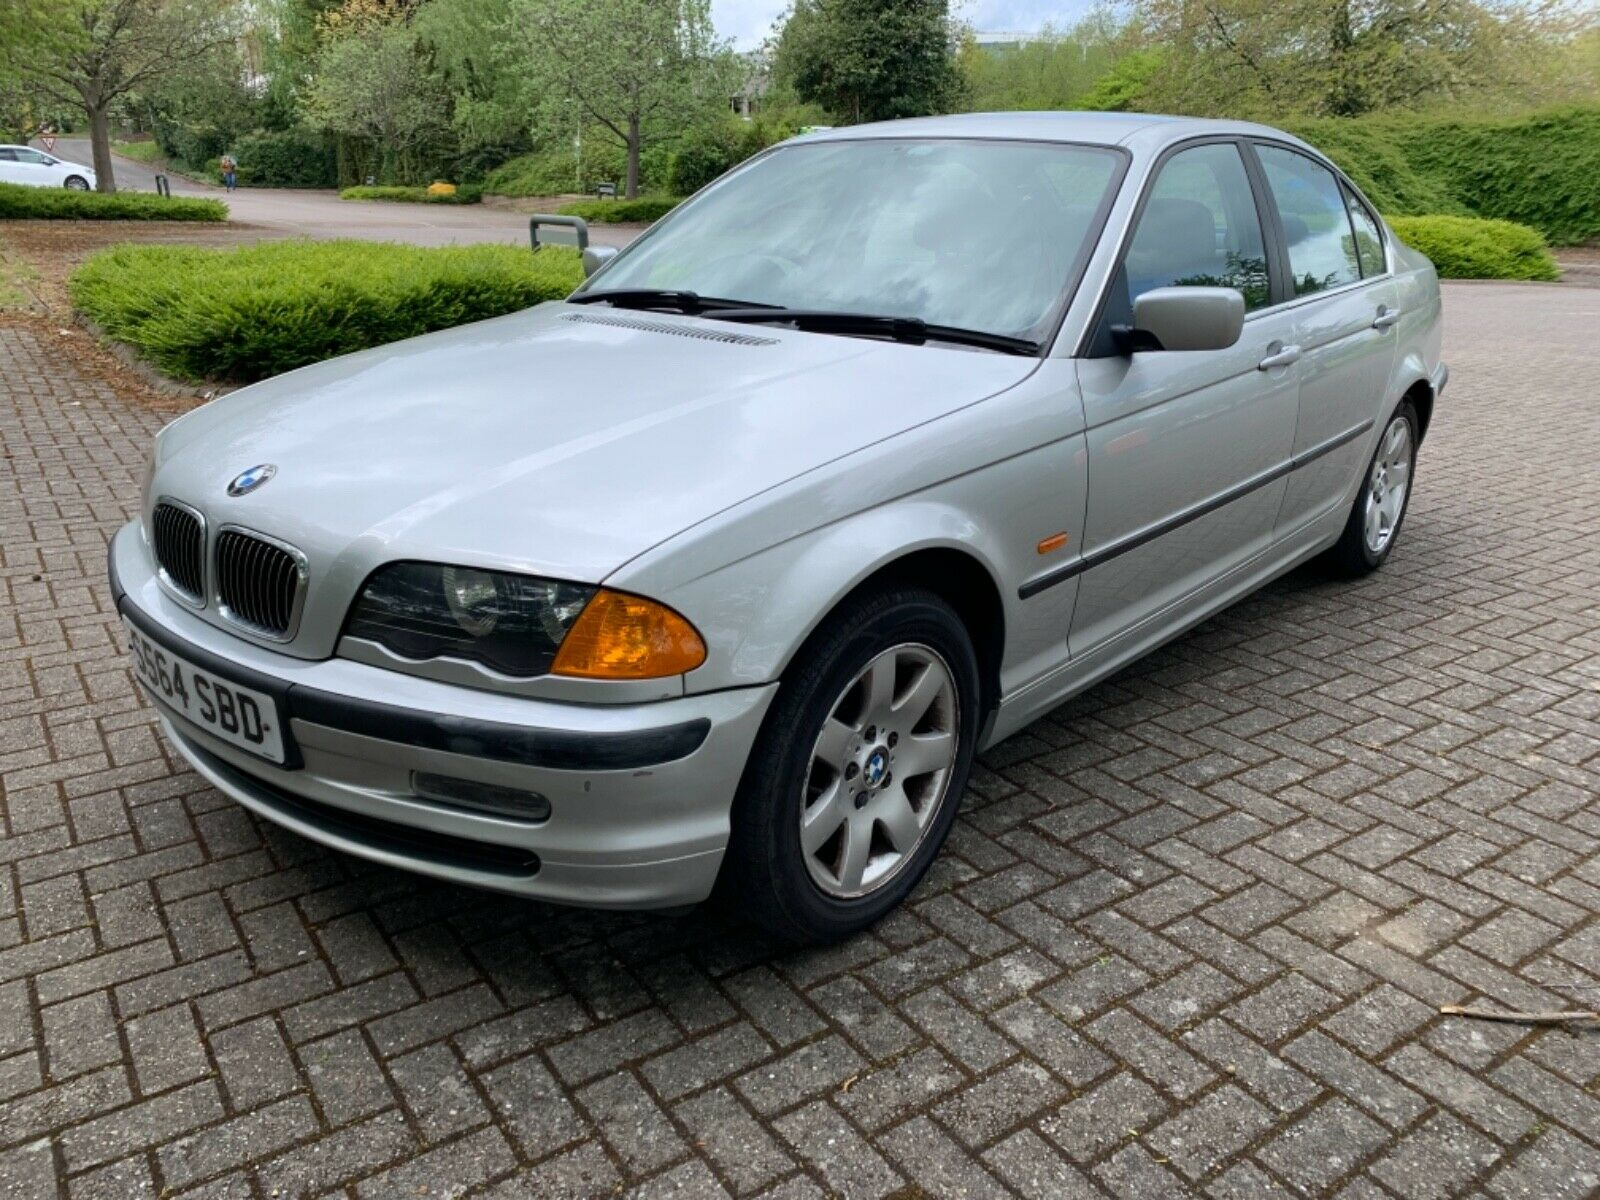 Bmw 323iSE AUTO. 1998 2 owners FULL SERVICE HISTORY 86,000 MILES